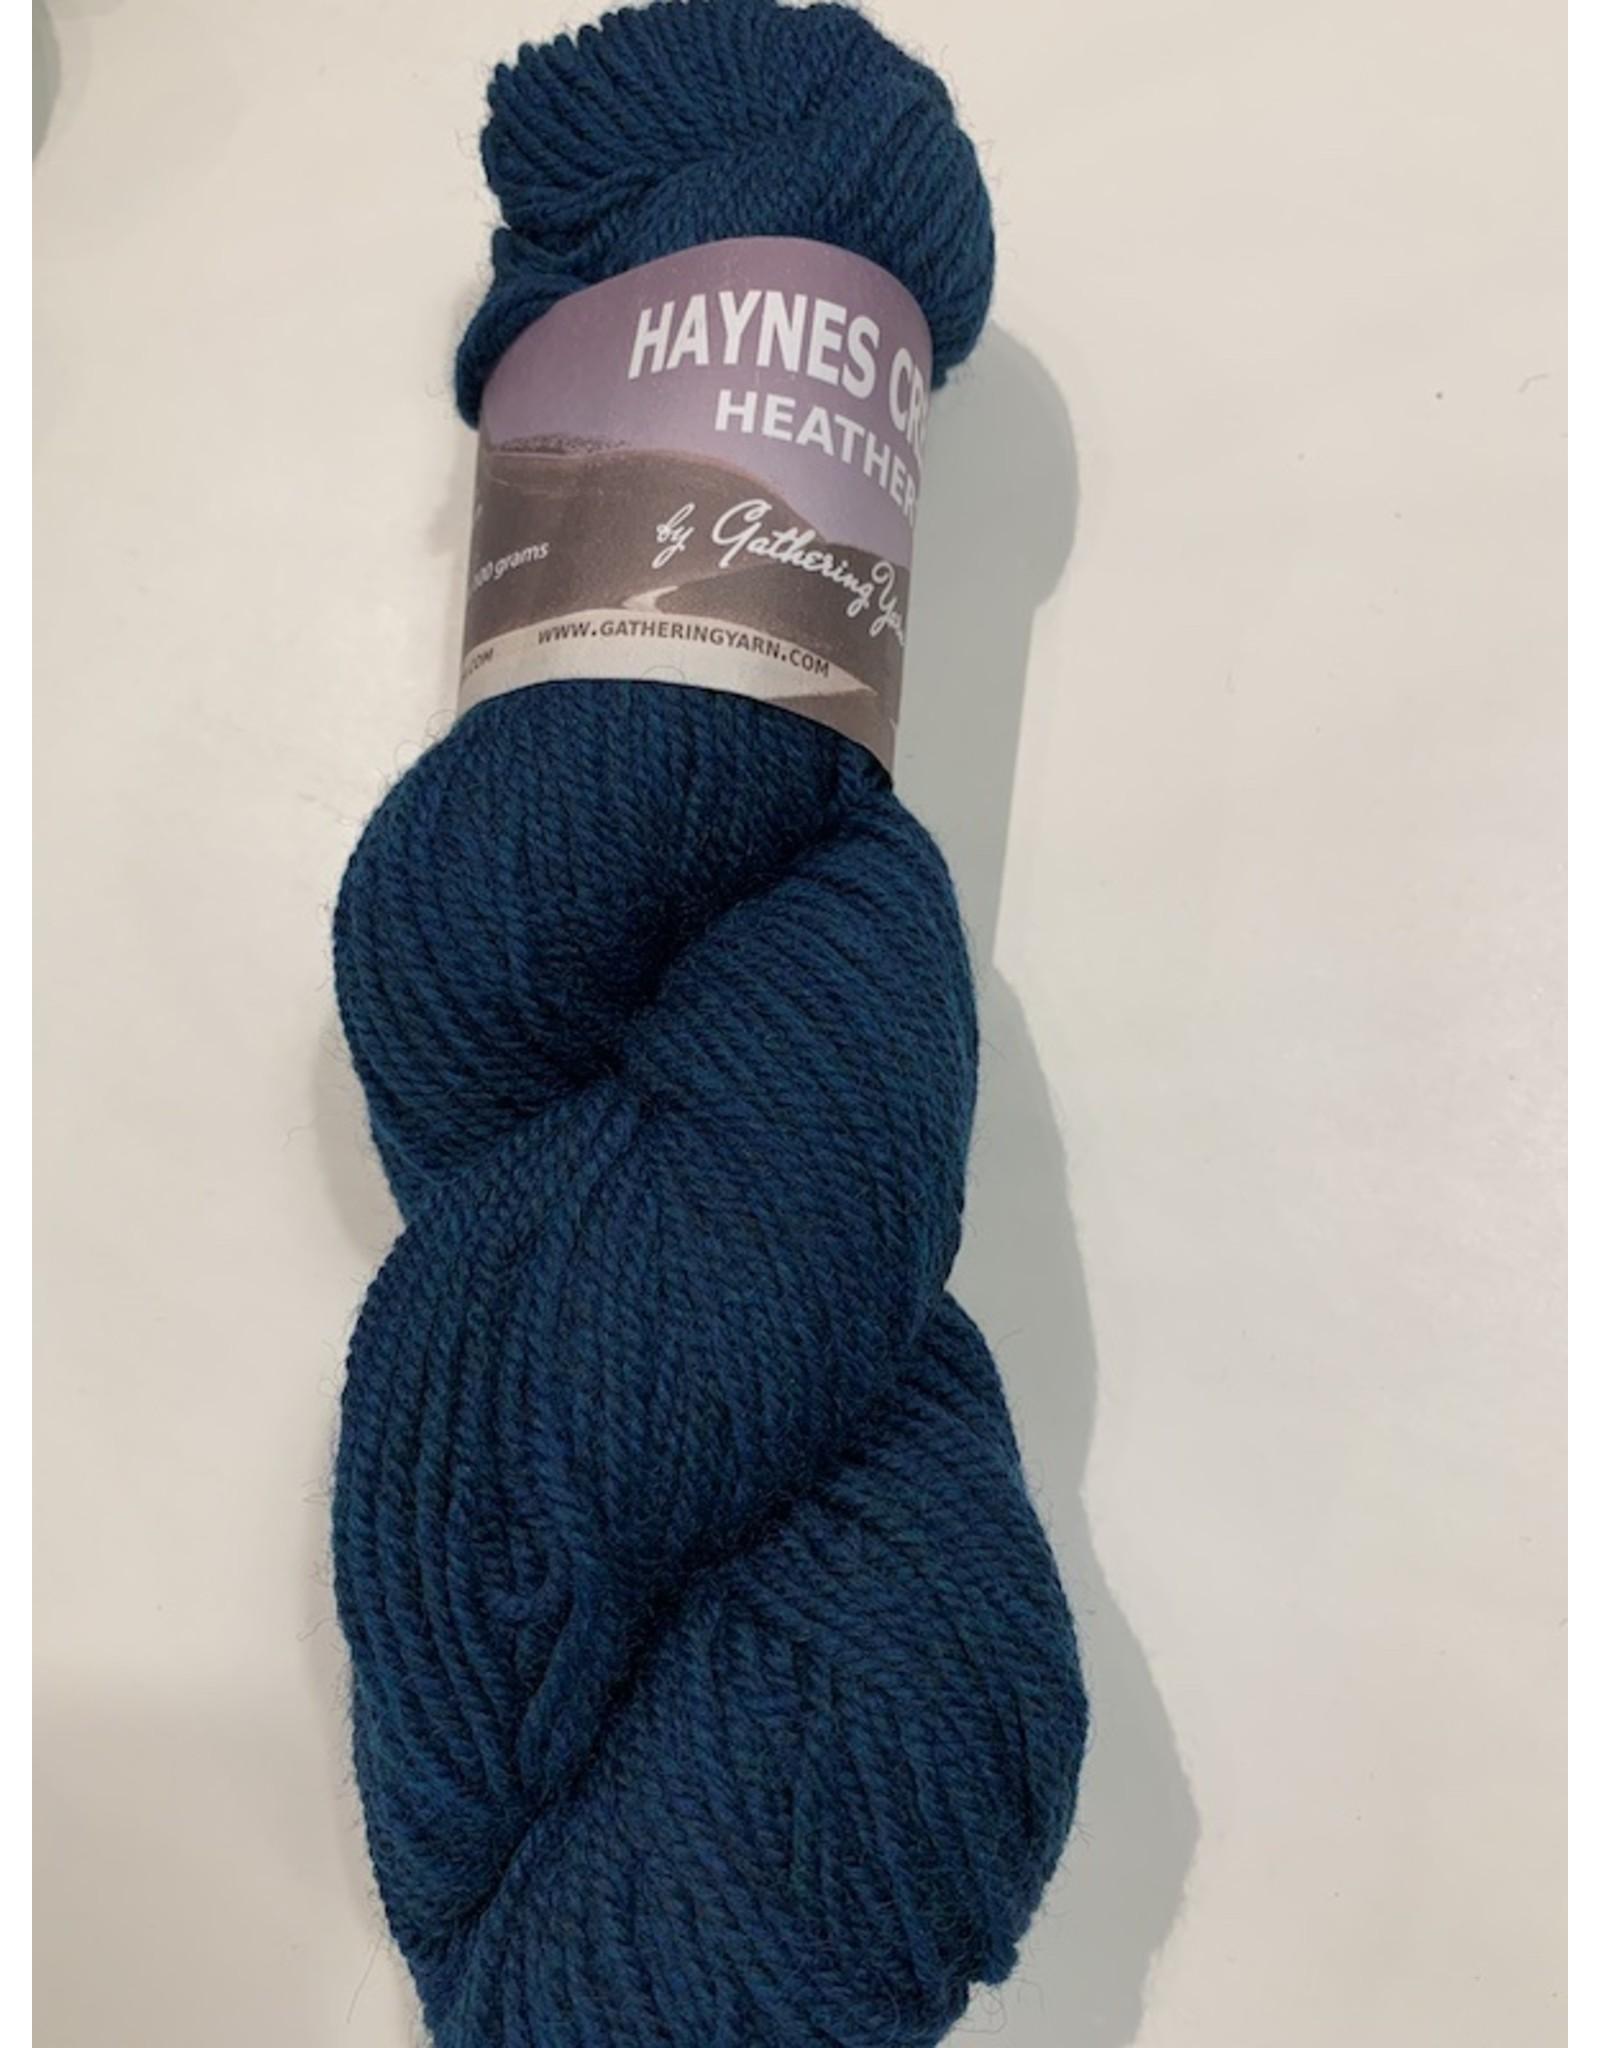 Gathering Yarns Hayne's Creek Heathers Aran